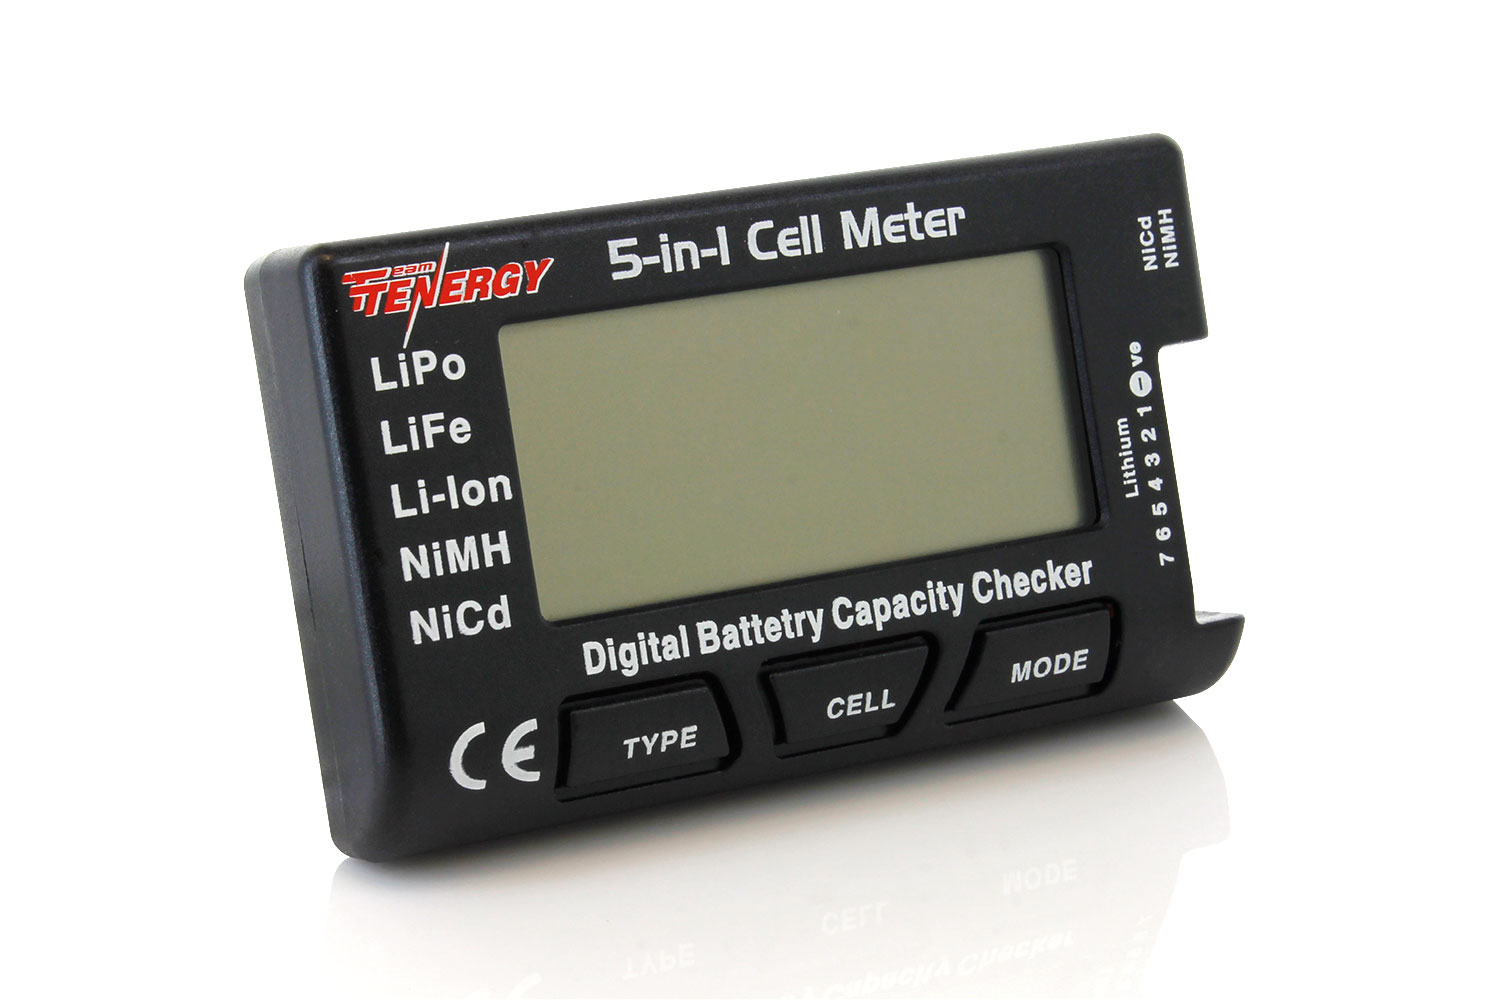 LiFePO4 Li-ion//NiCd//NiMH IFLYRC 5-in-1 RC Cell Meter Intelligent Battery Meter Digital Battery Capacity Battery Checker Battery Balancer for LiPo